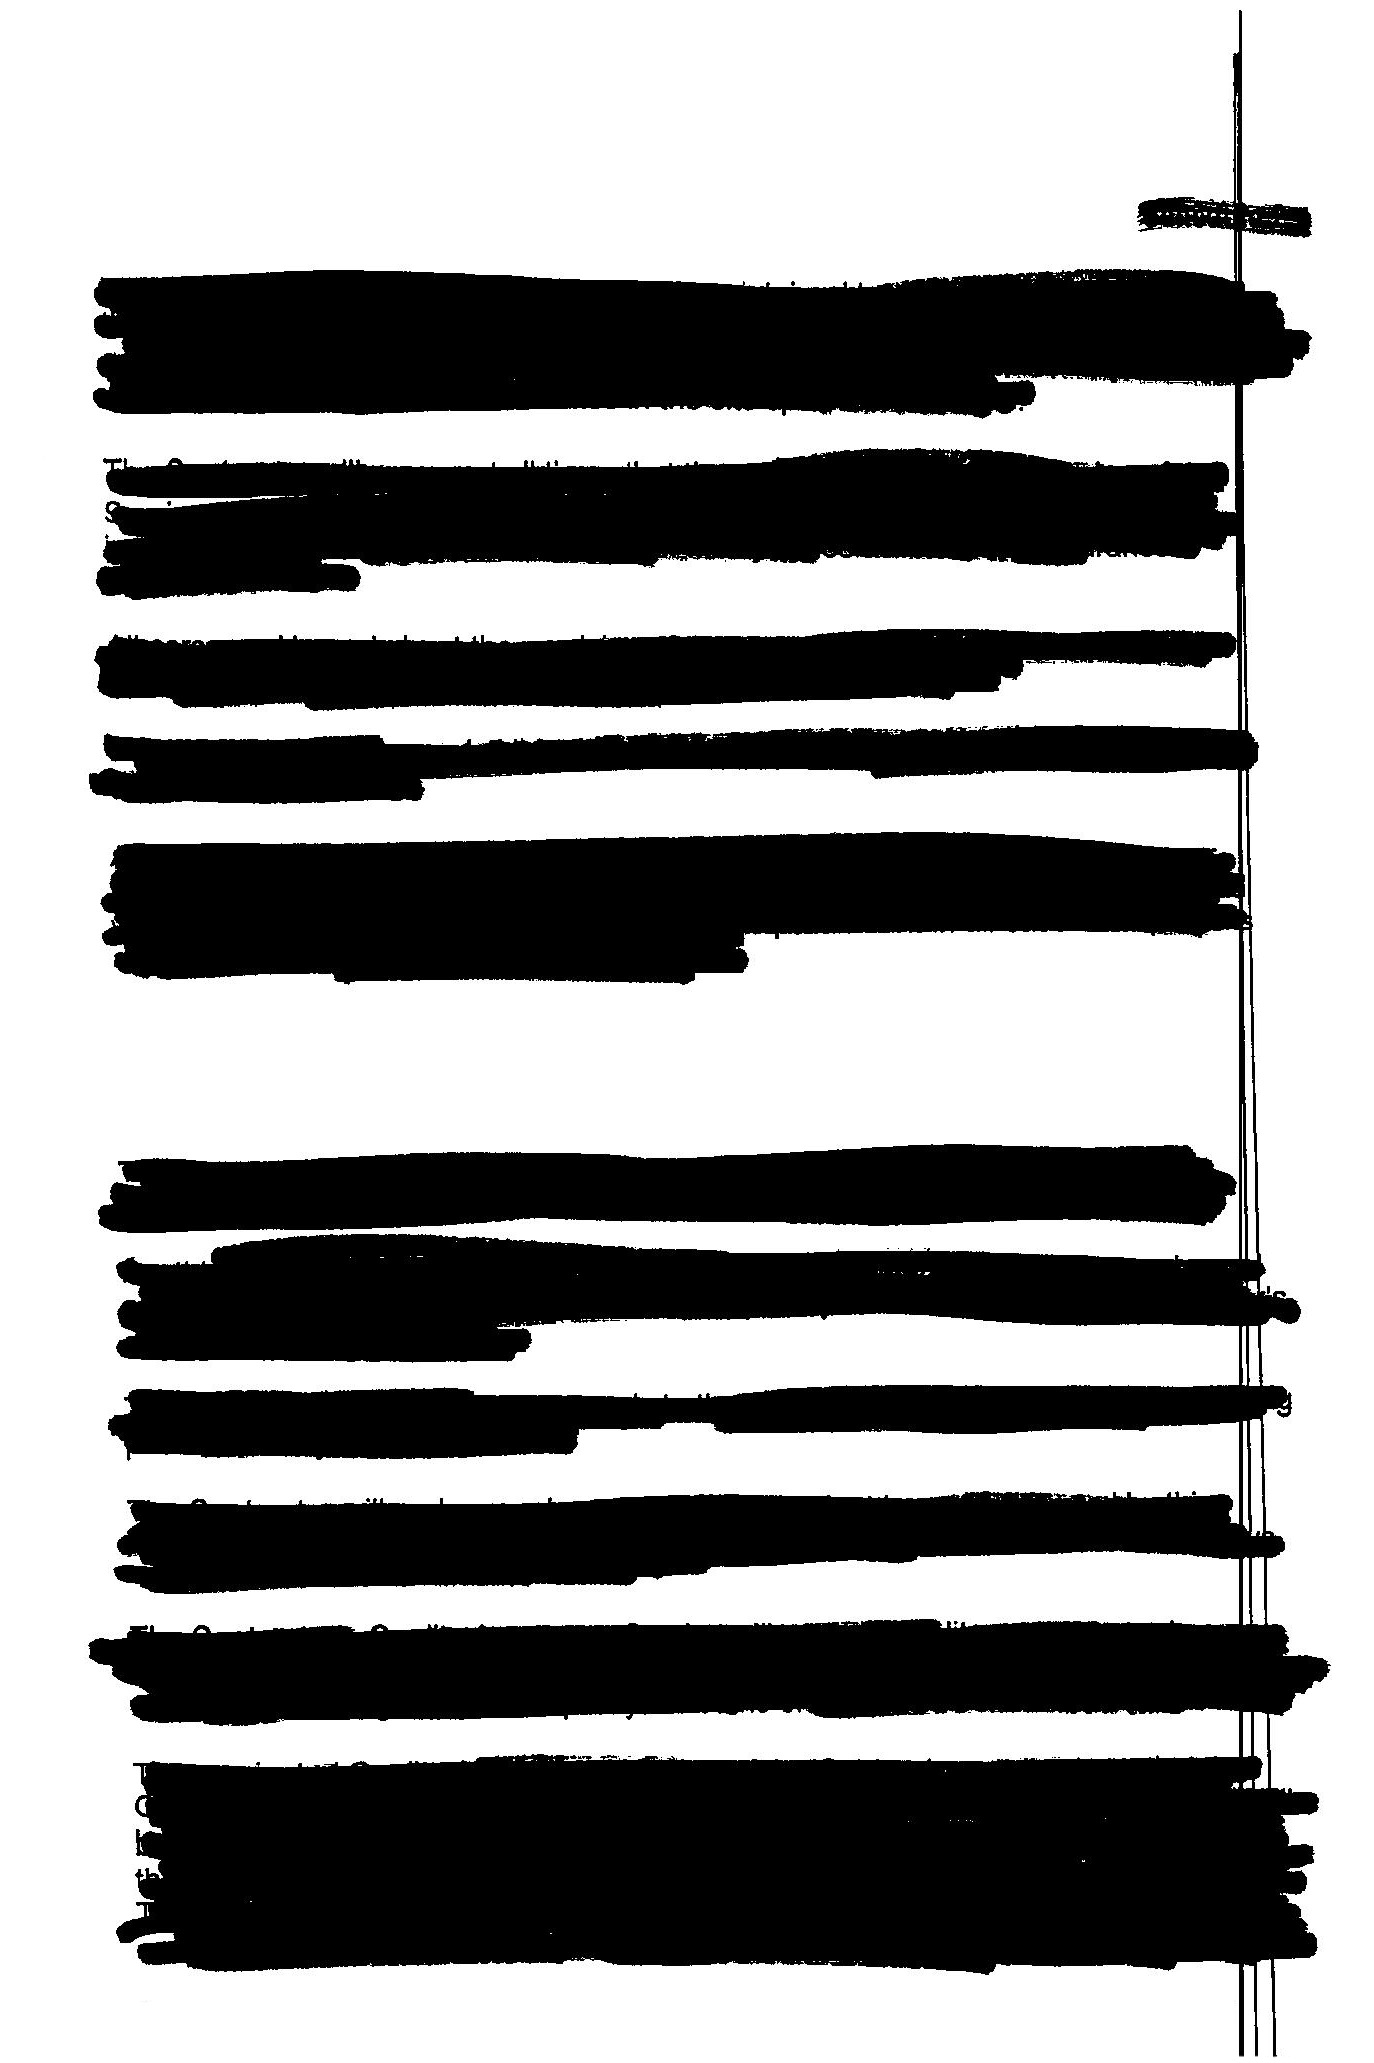 FOI_redacted_illustration.jpg